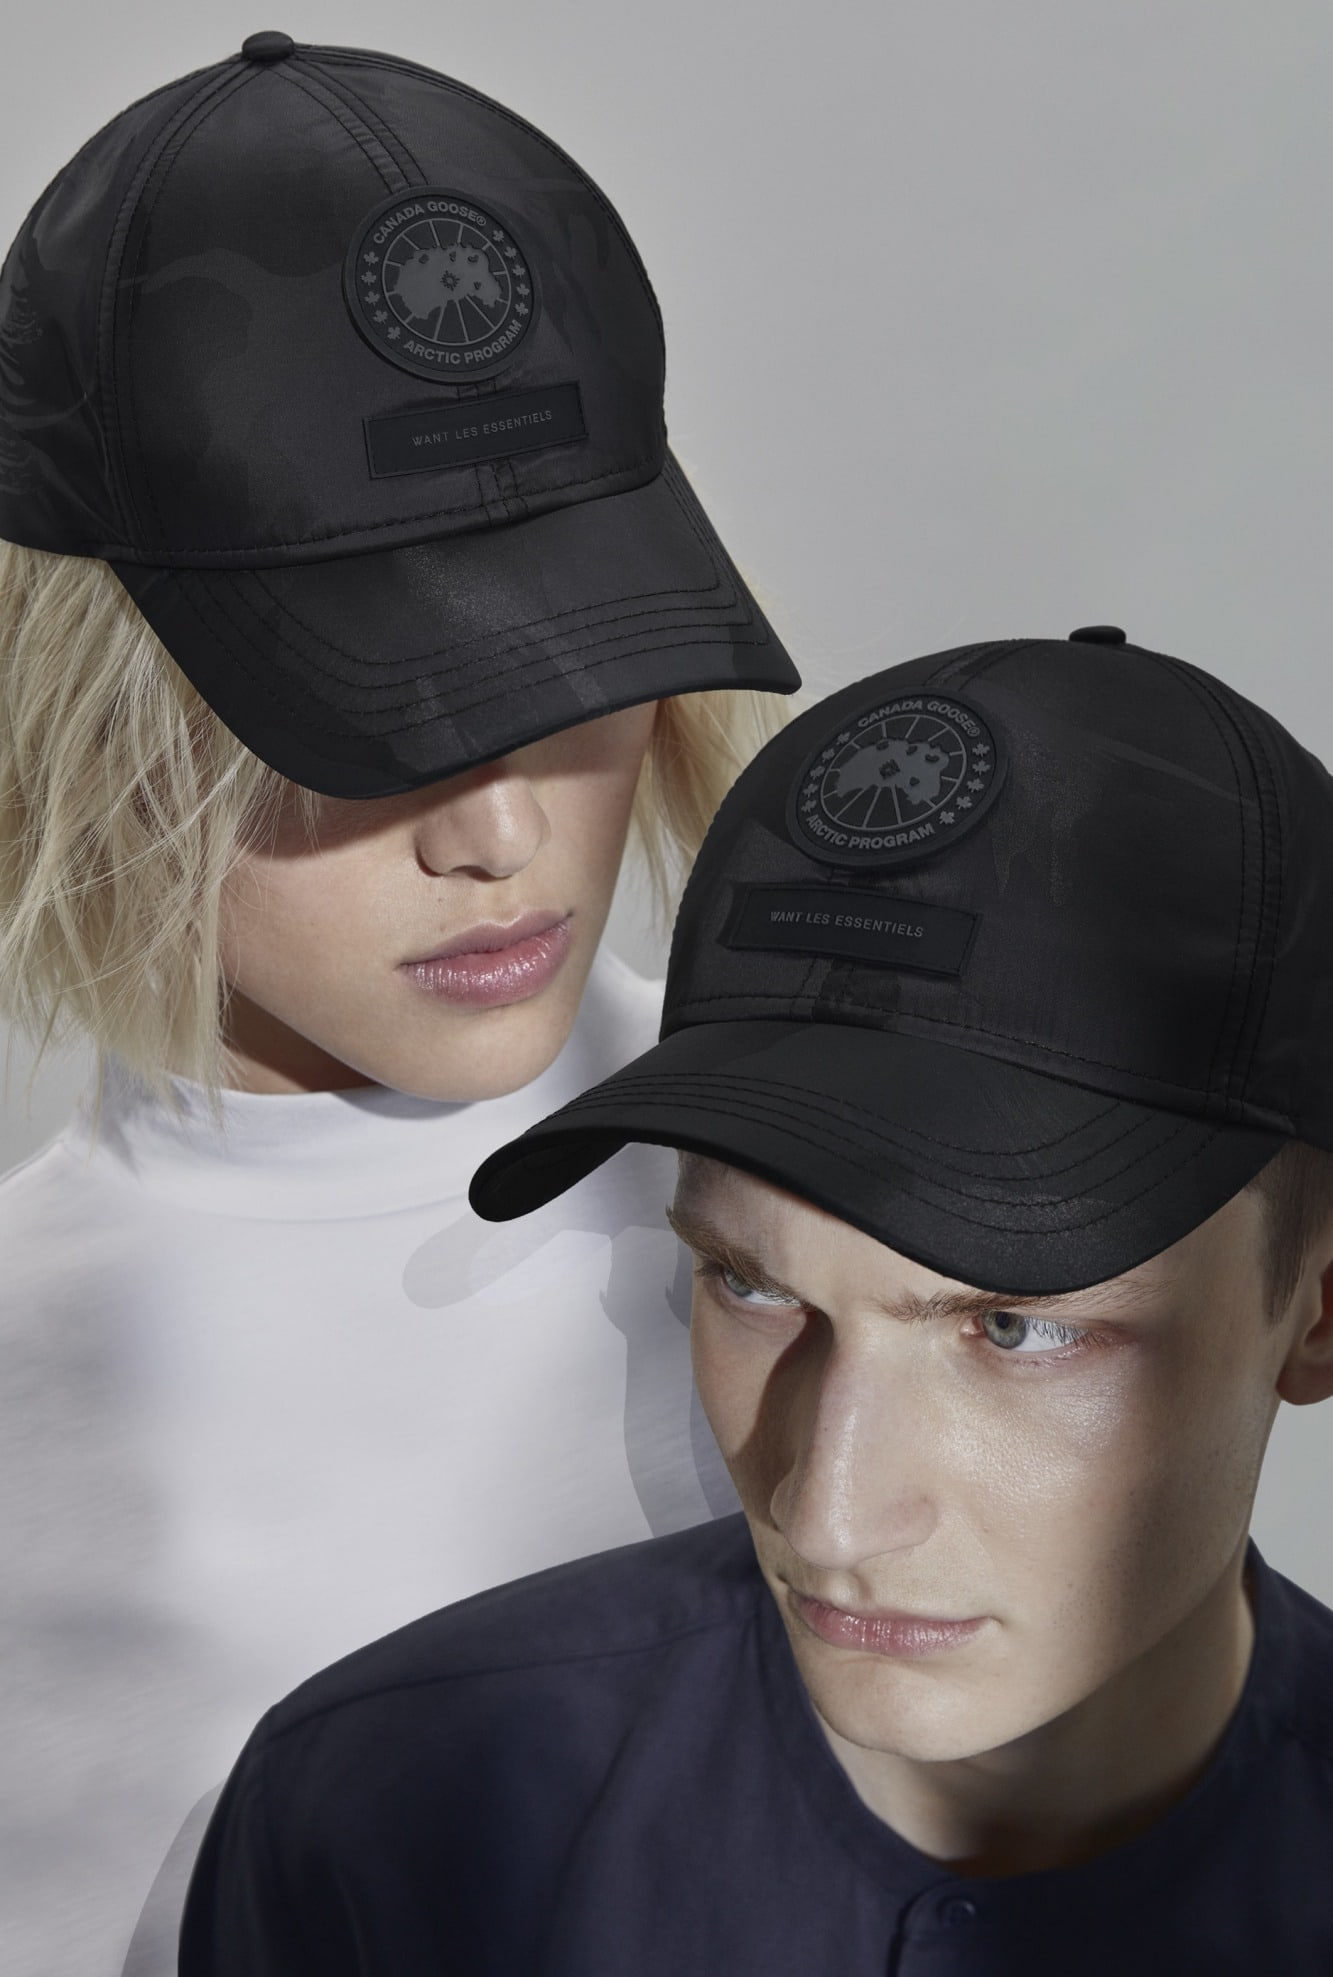 This water-resistant cap is ideal for protection from the sun and mildly inclement weather